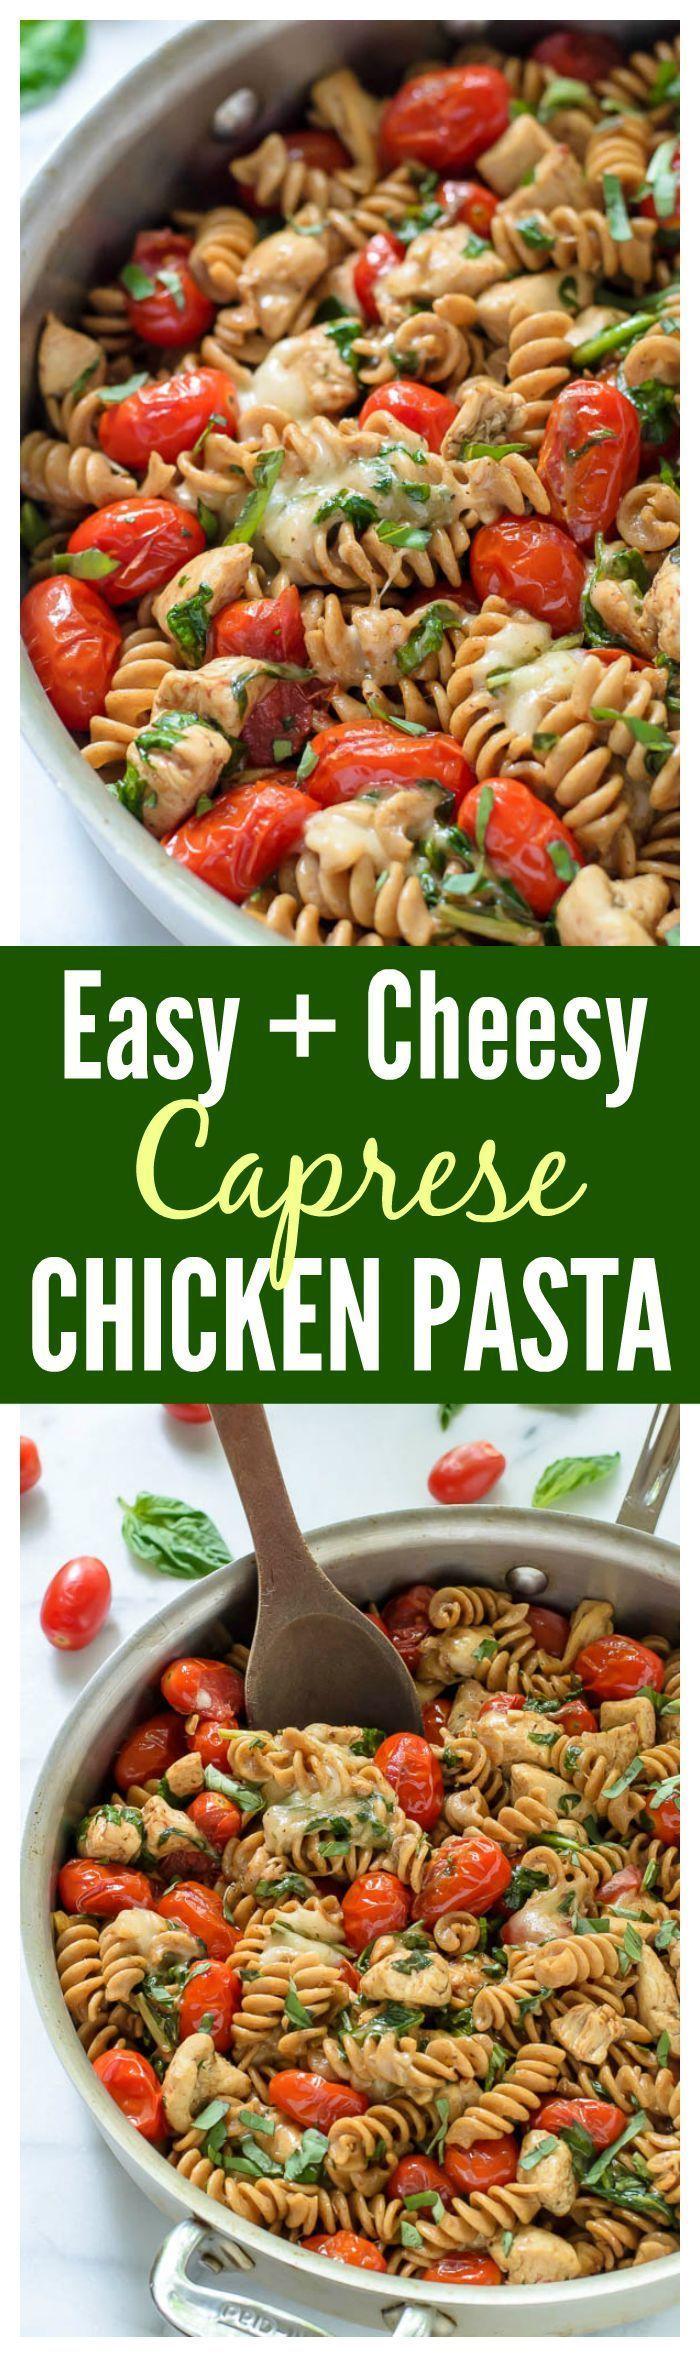 Cheesy Caprese Chicken Pasta with Mozzarella cheese and fresh tomatoes. Easy, healthy, and ready to go in only 30 minutes!